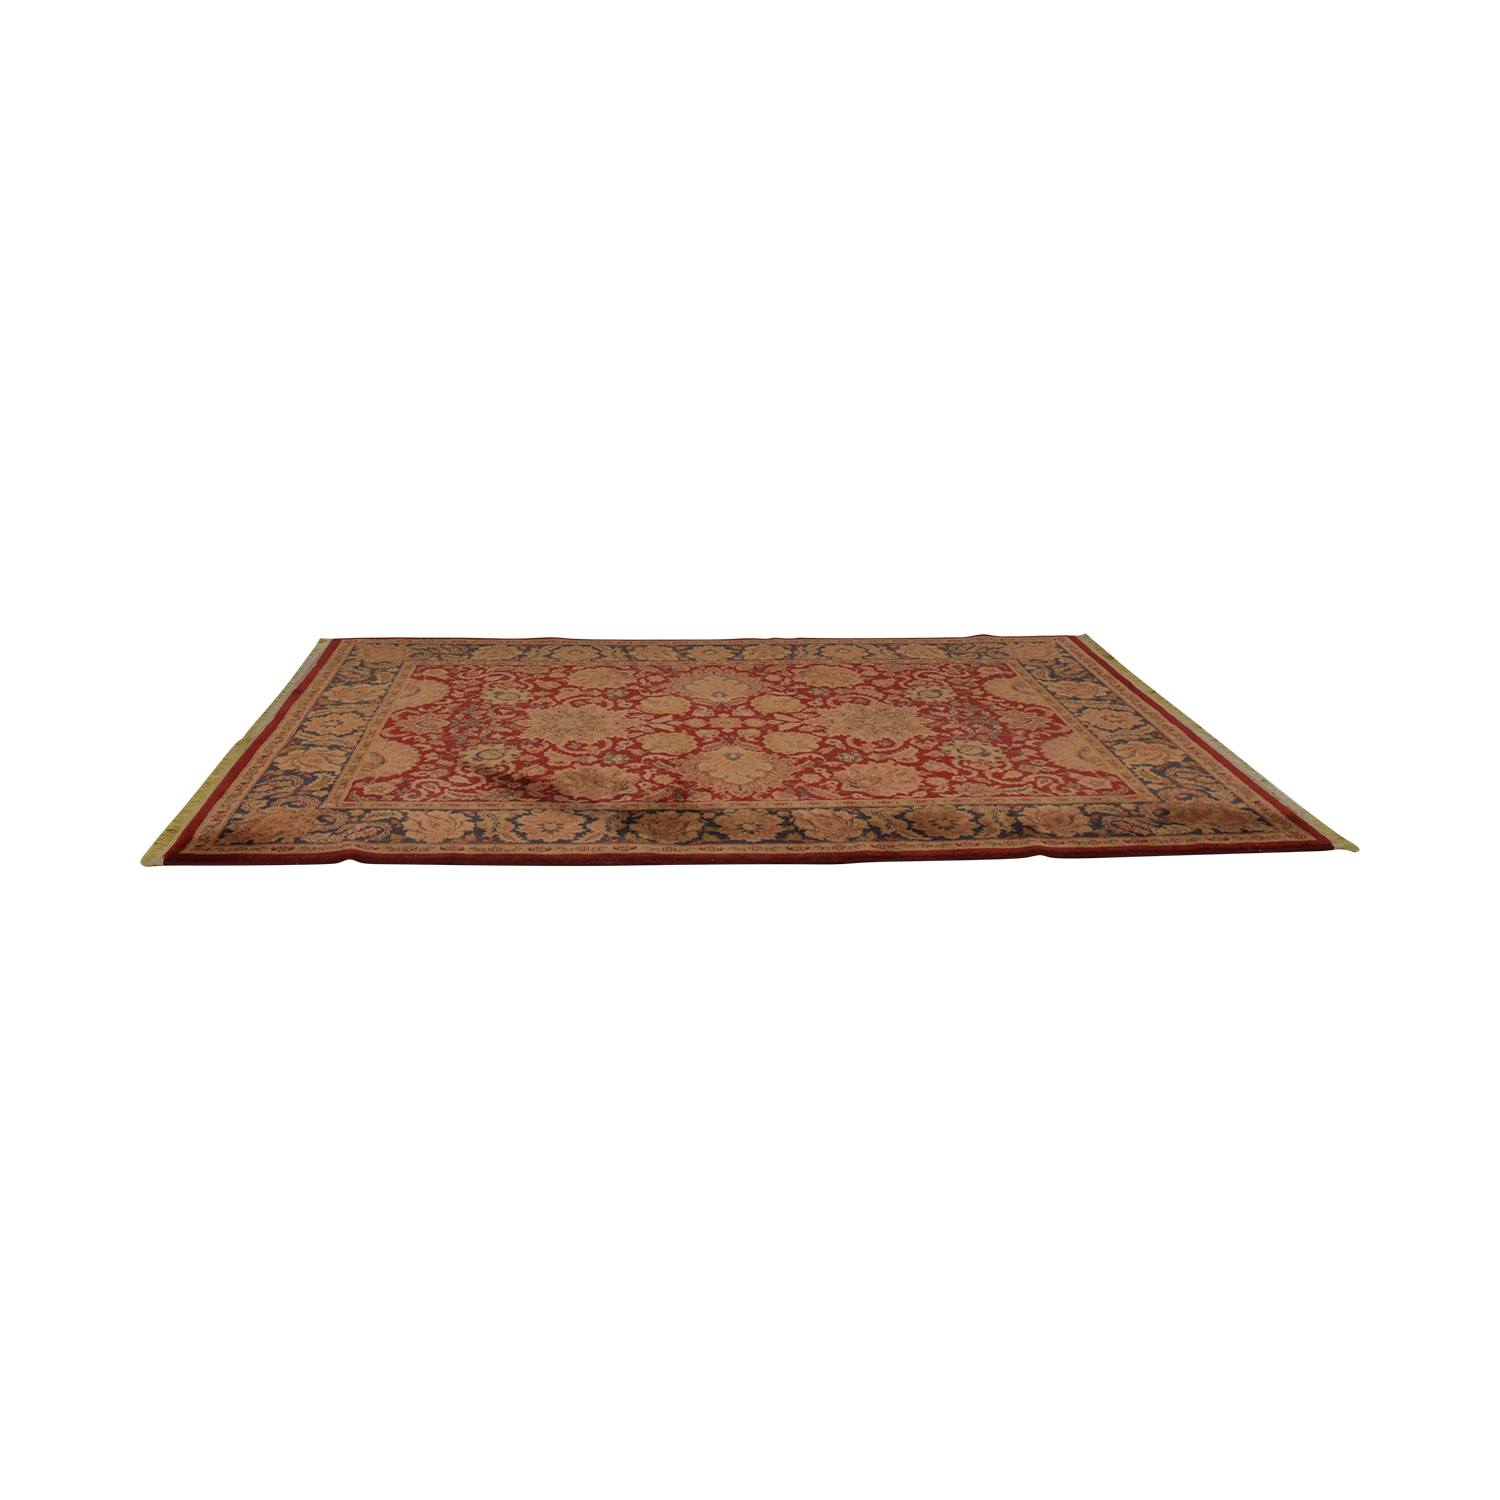 Osta Carpets Belgian Wool Tibetan-Inspired Rug / Decor